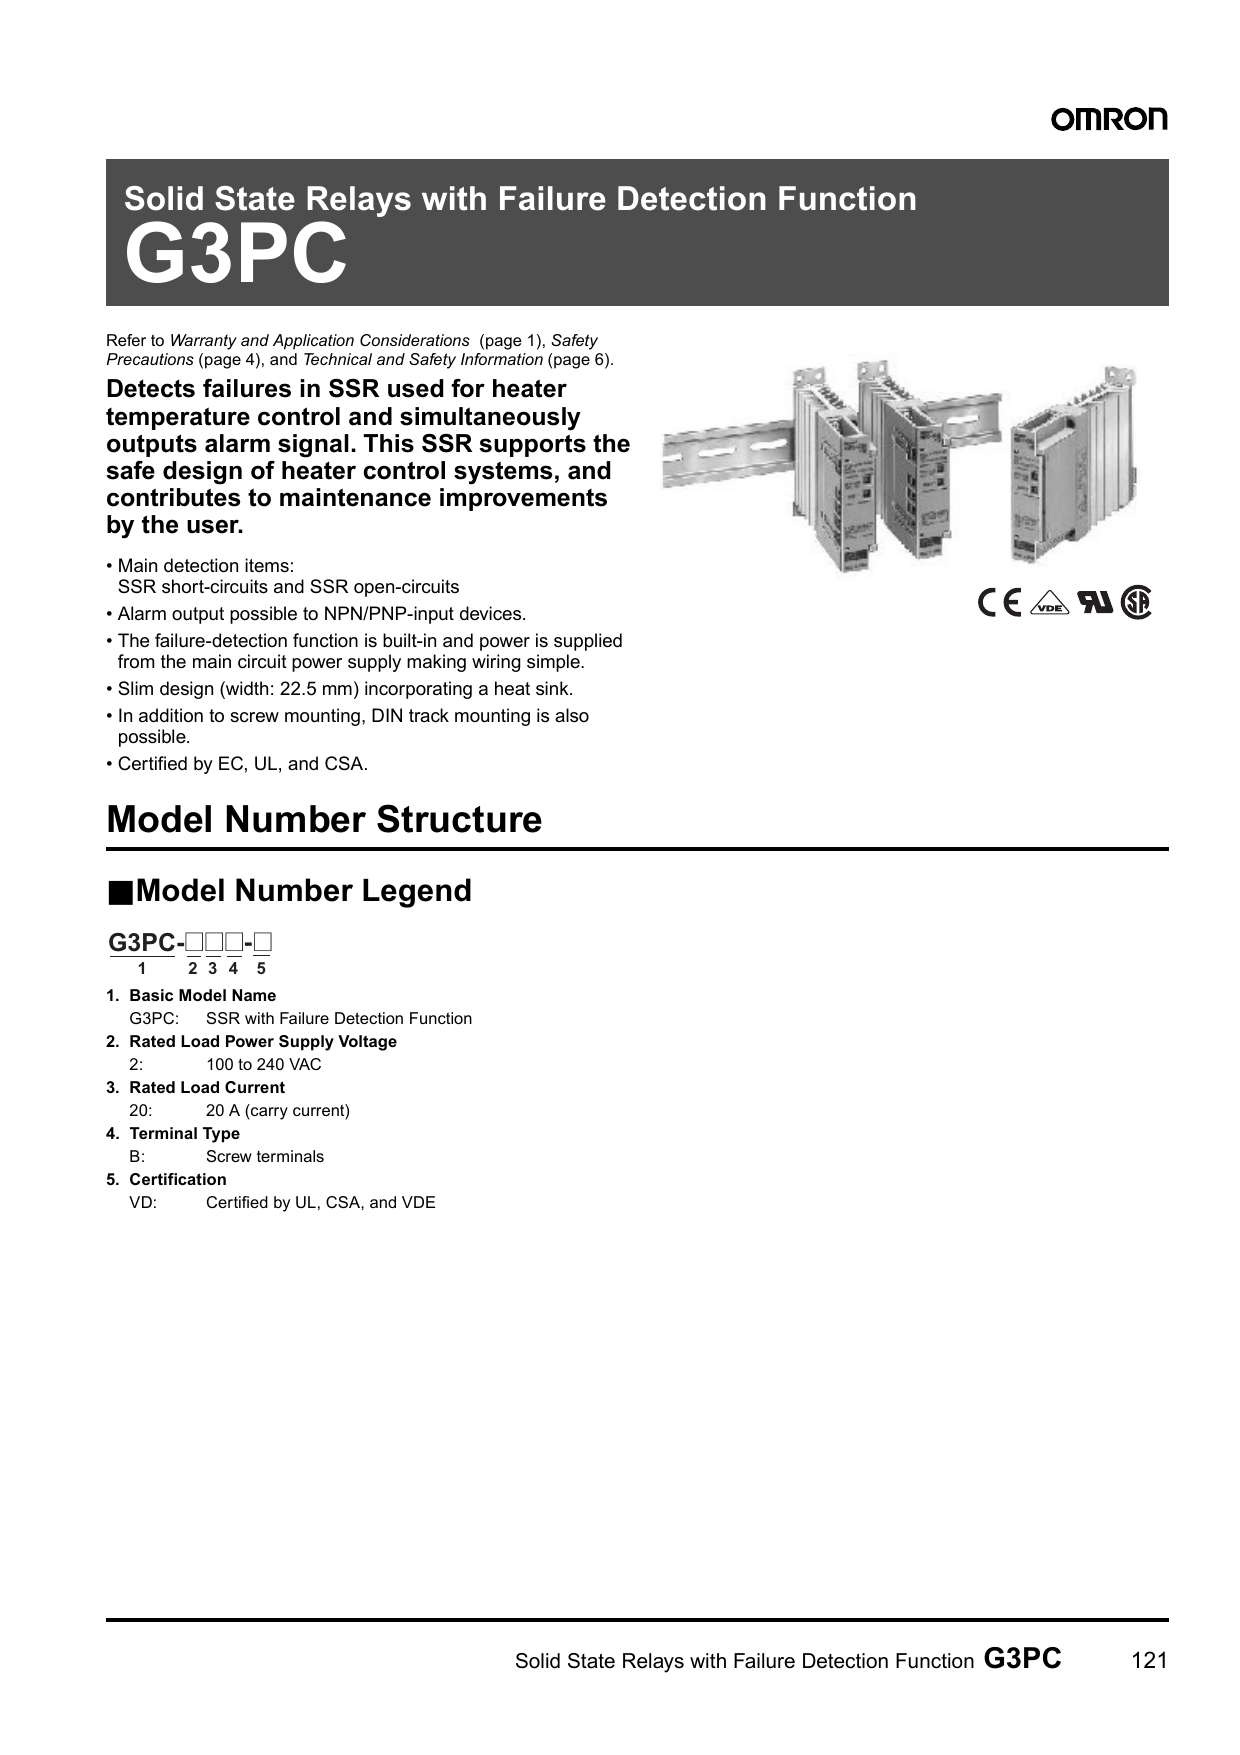 hight resolution of ormron solid state relay wiring diagram